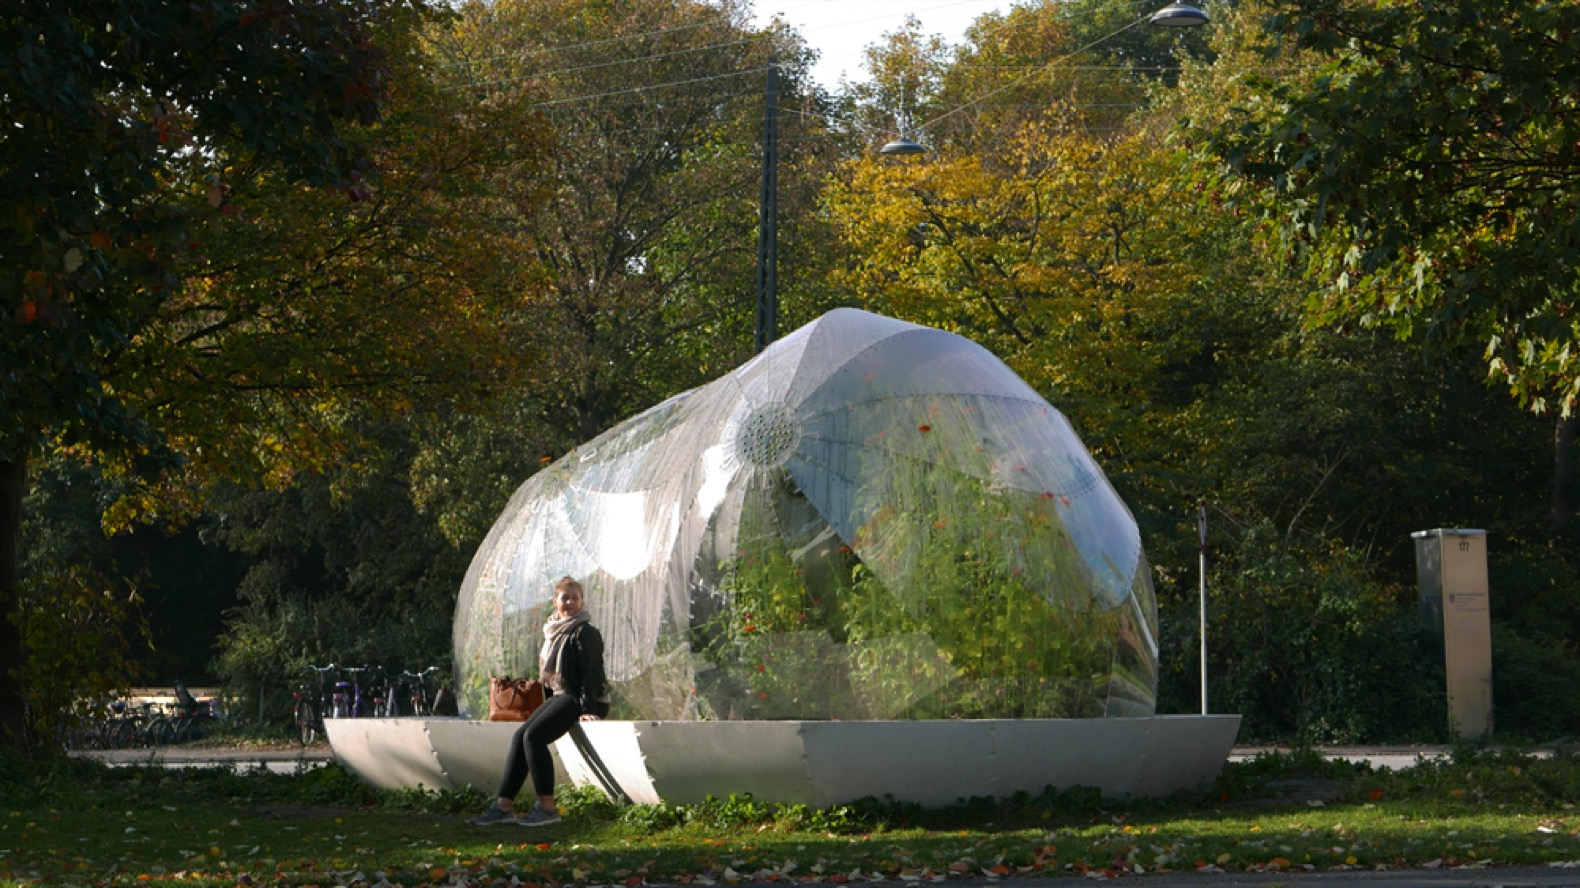 An experimental greenhouse pops up at a busy Copenhagen intersection